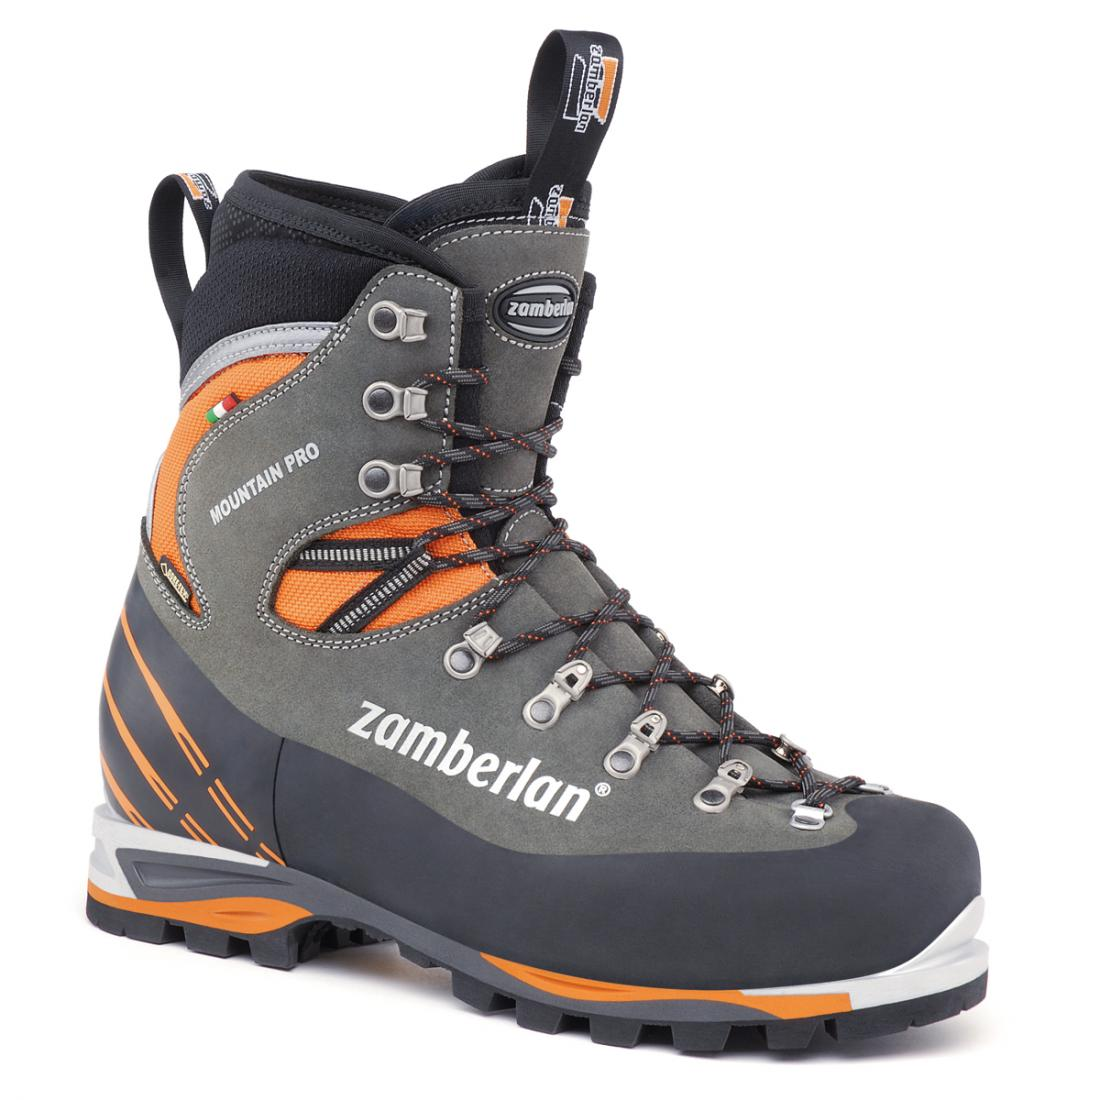 Zamberlan Ботинки 2090 MOUNTAIN PRO EVO GTX RR (47, Graphite/Orange, , ,)